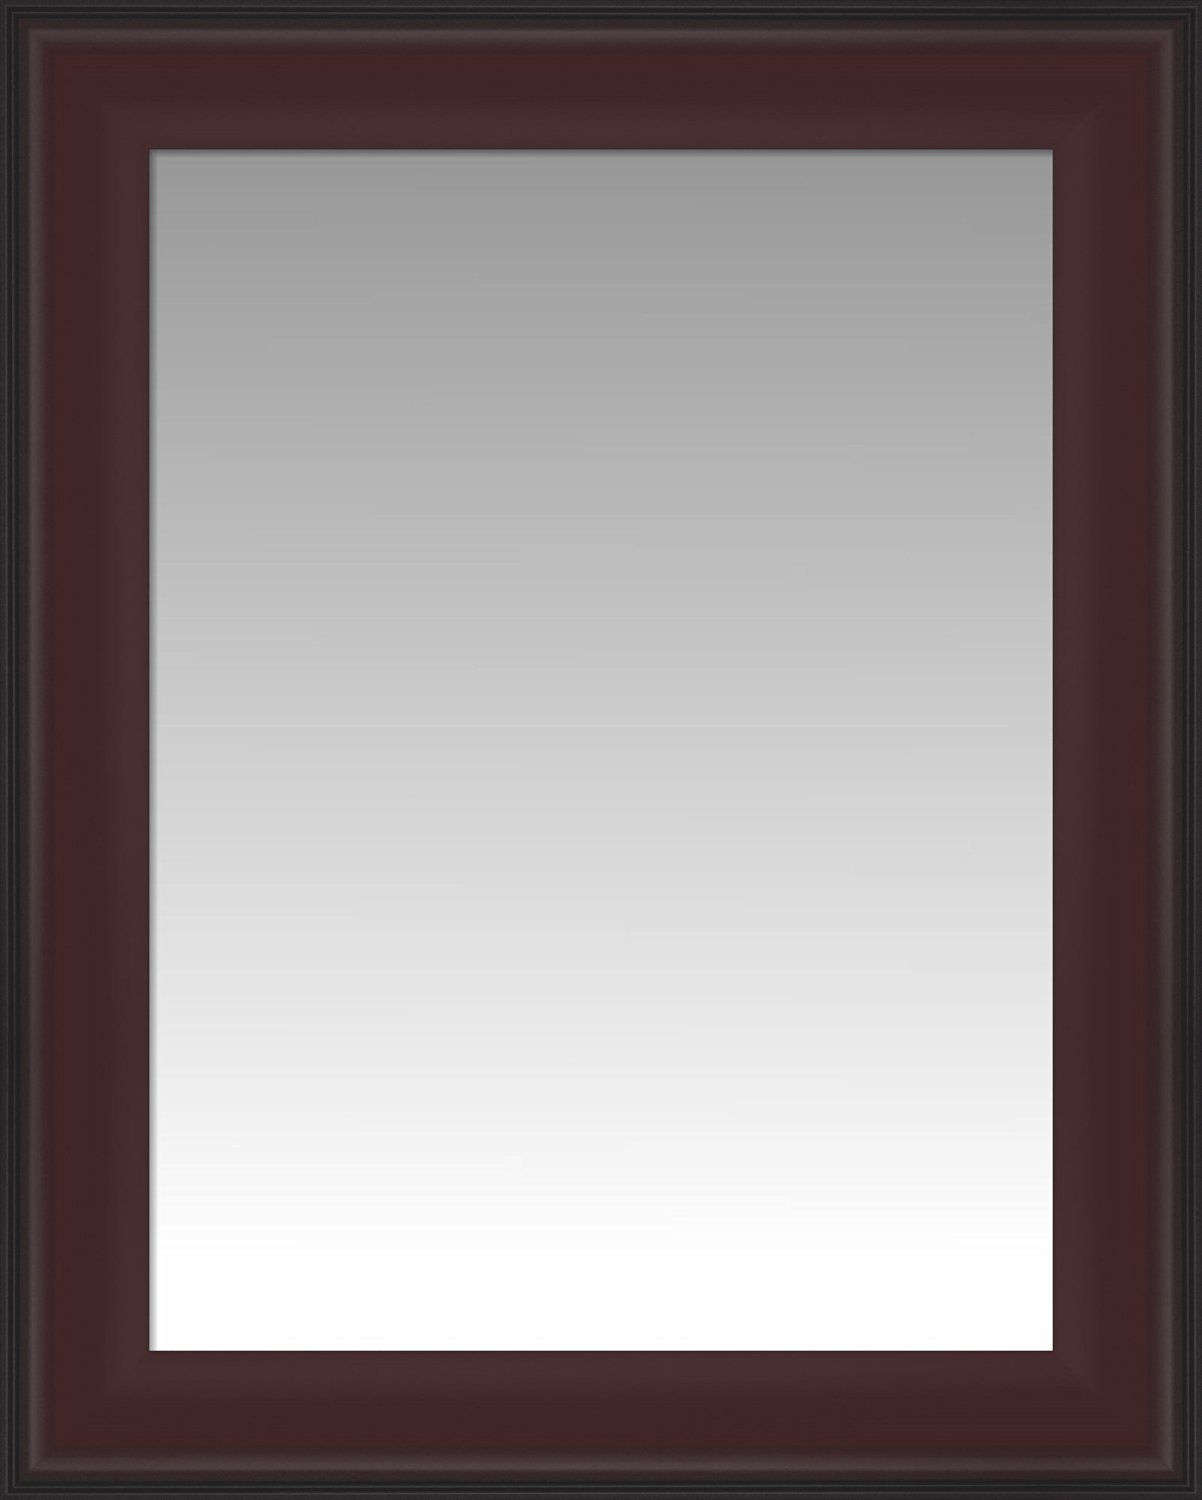 Formal Dark Cherry with Black Outer Edge Wall Mirror, Size 19.5 X 23.5